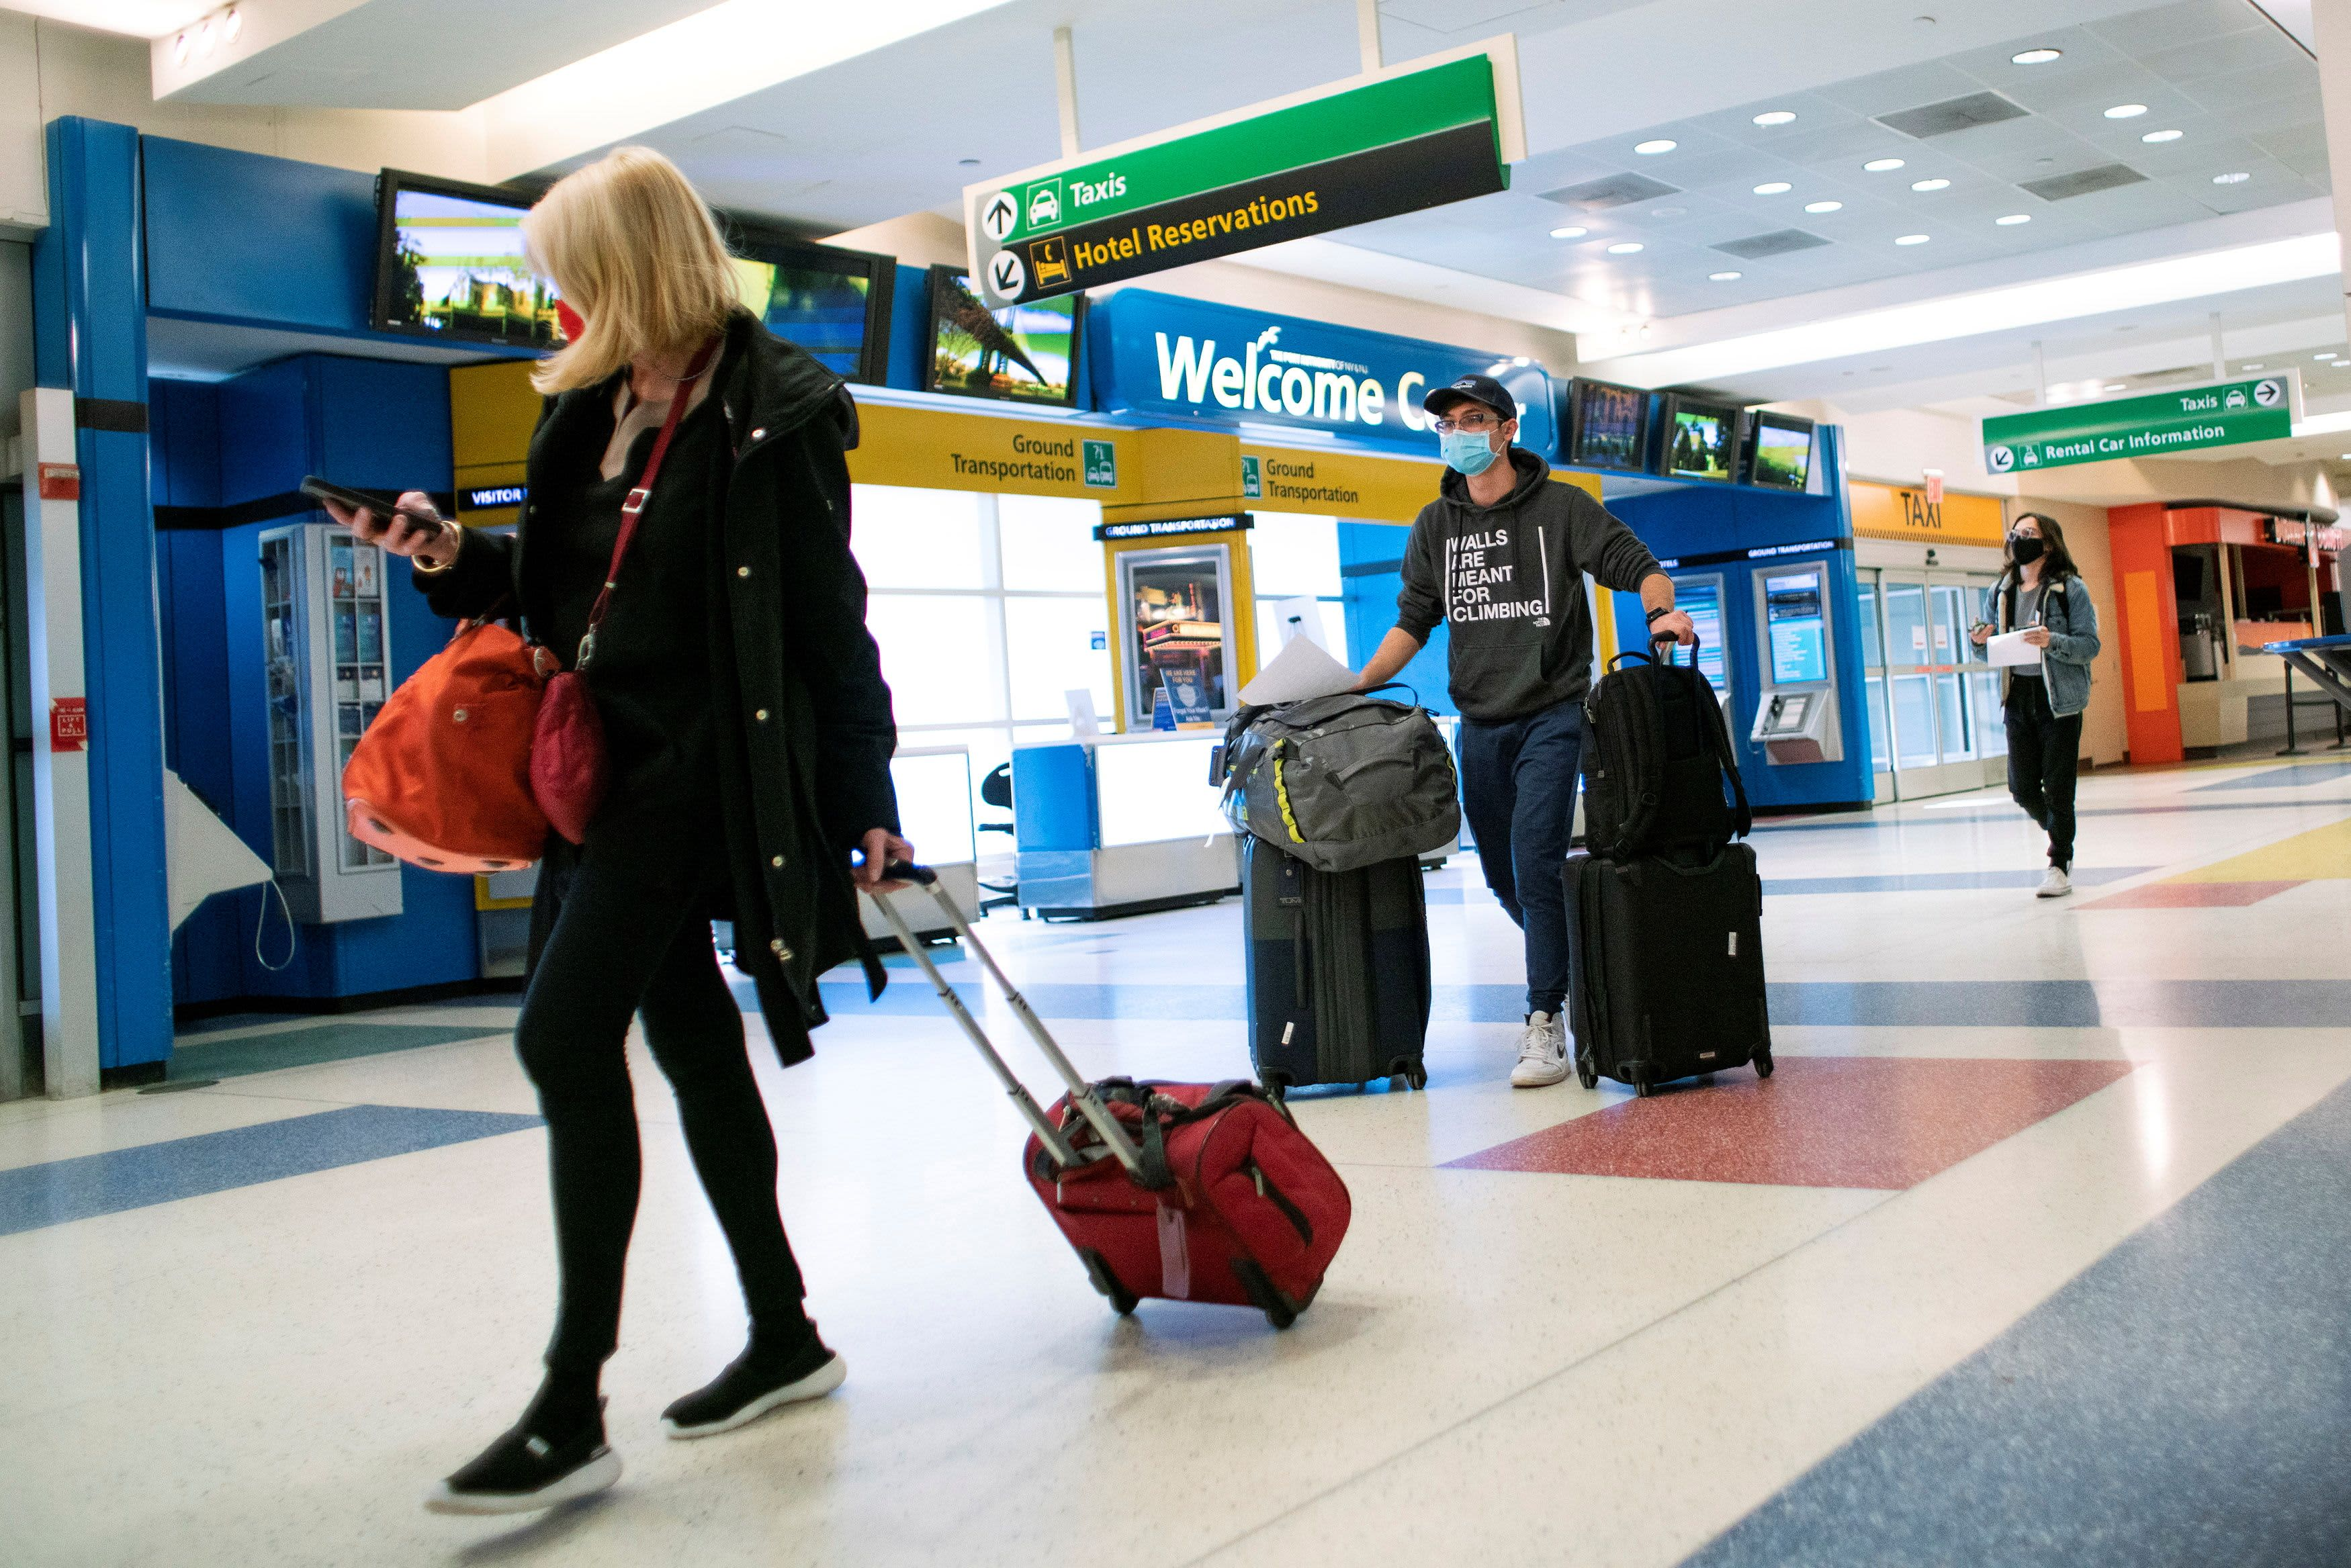 U.S. will require negative Covid tests for inbound international air travel – CNBC